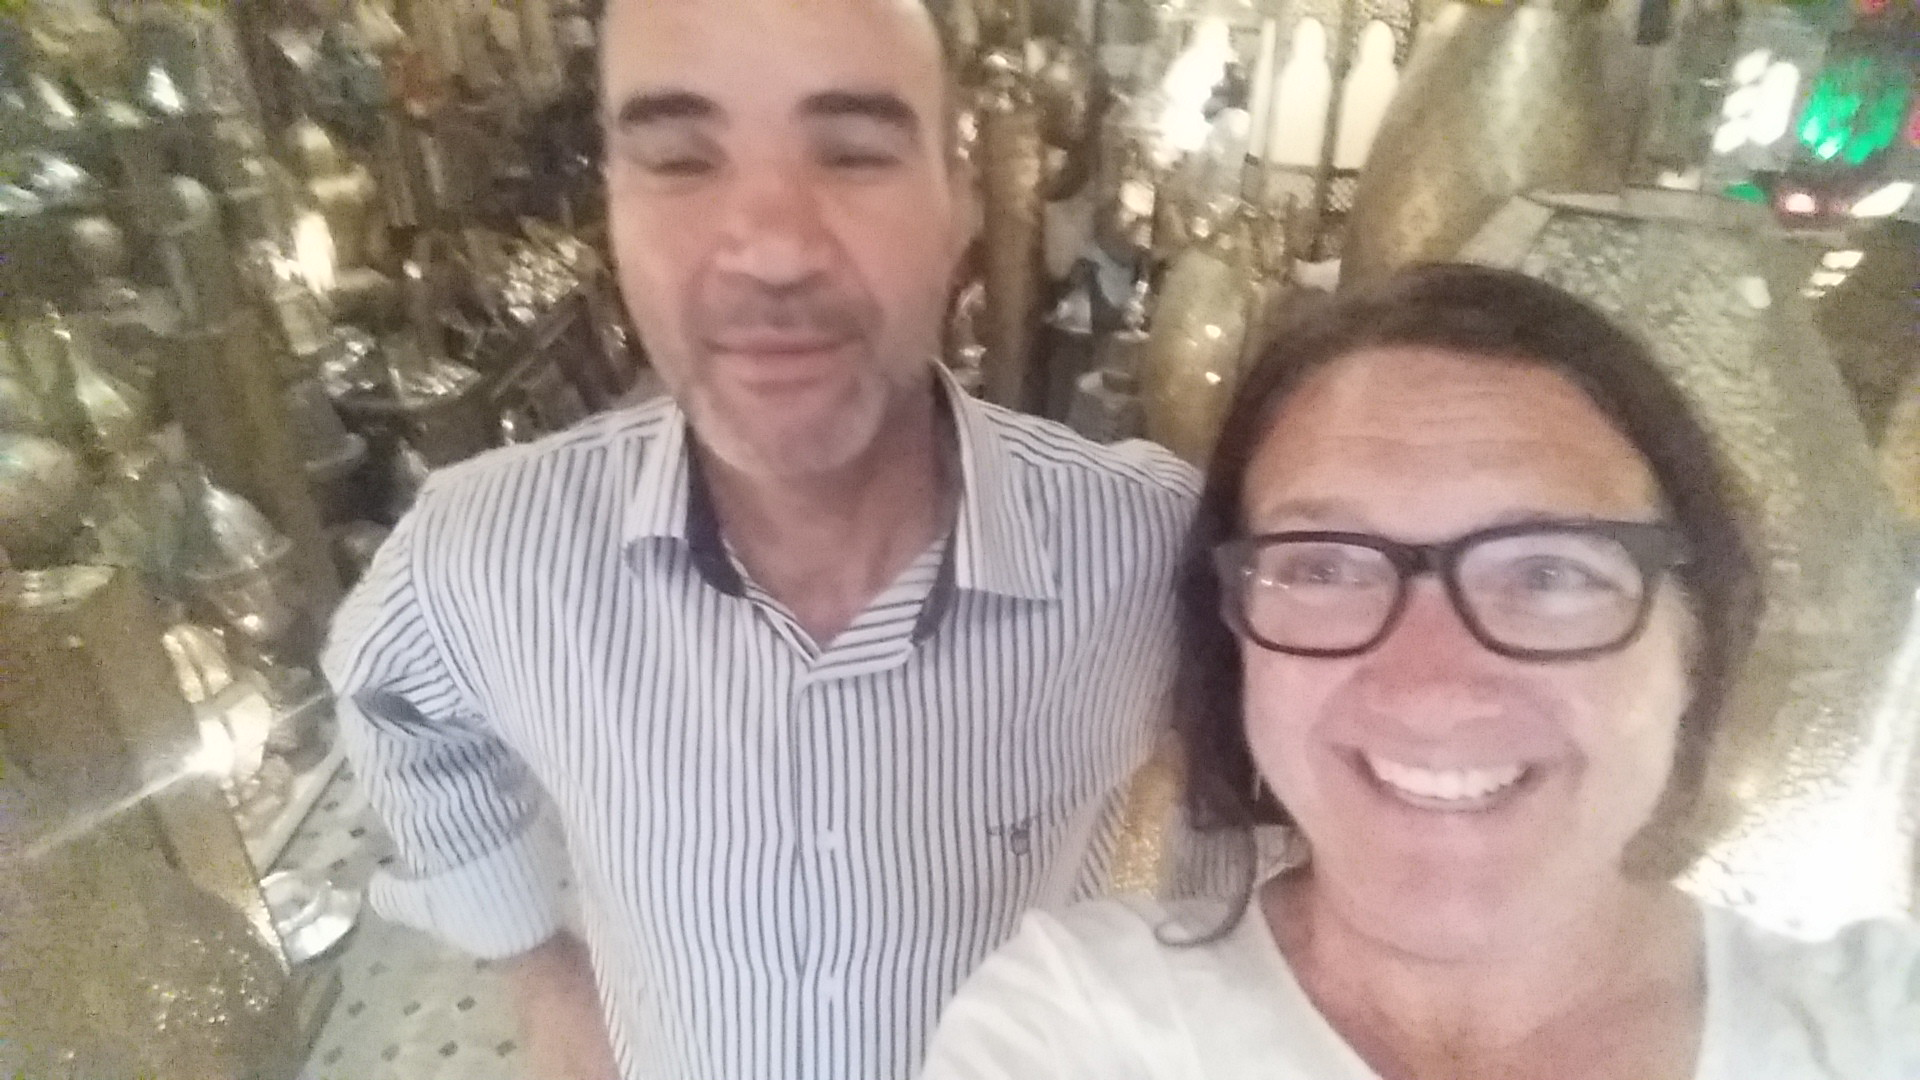 A very unflattering photo of me & Mohammed, a local shop owner in Fes, this past June.